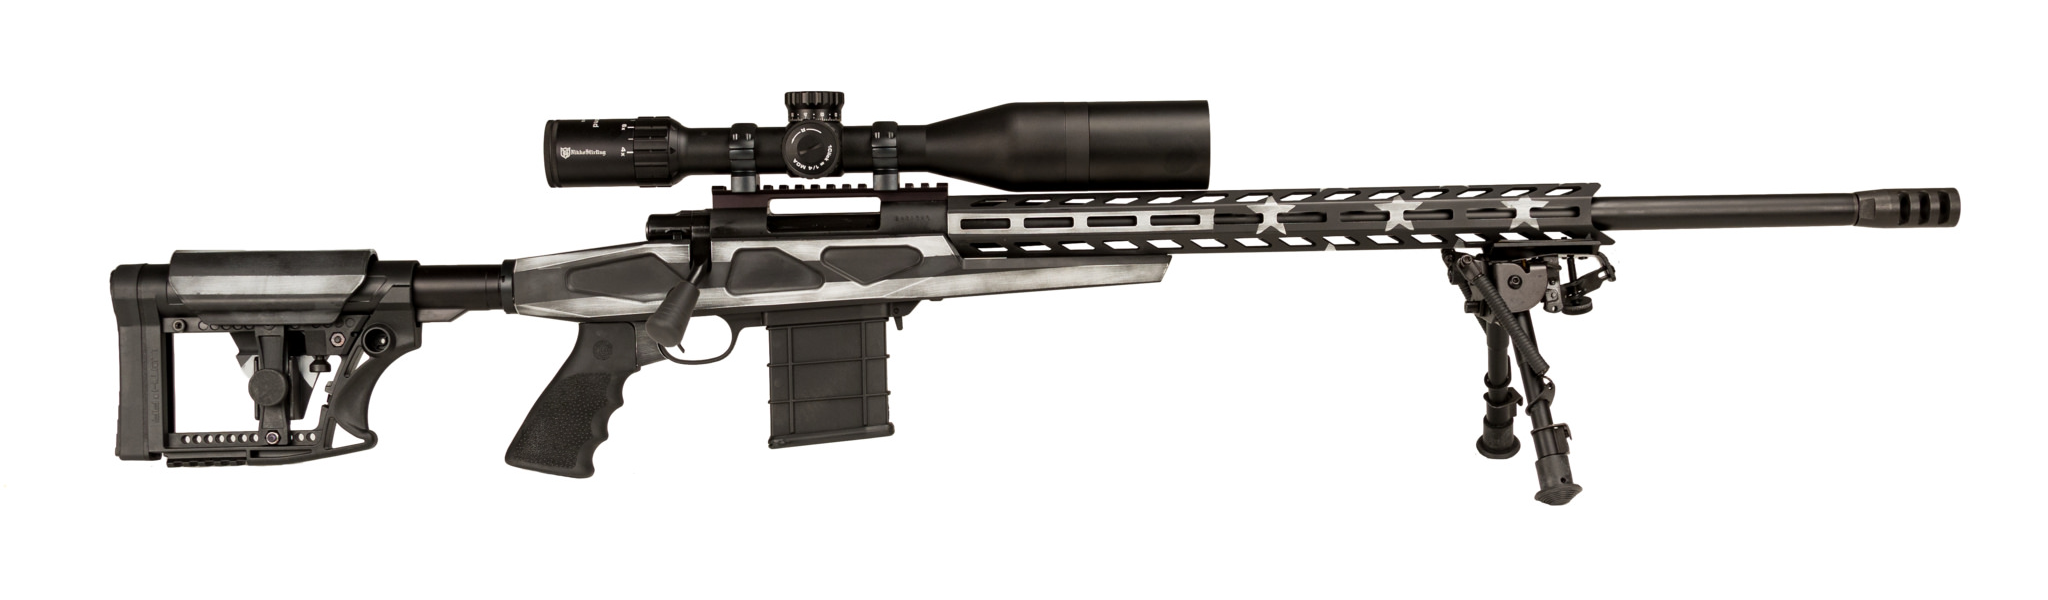 apc rifle usa chassis howa rifles assembled decorated